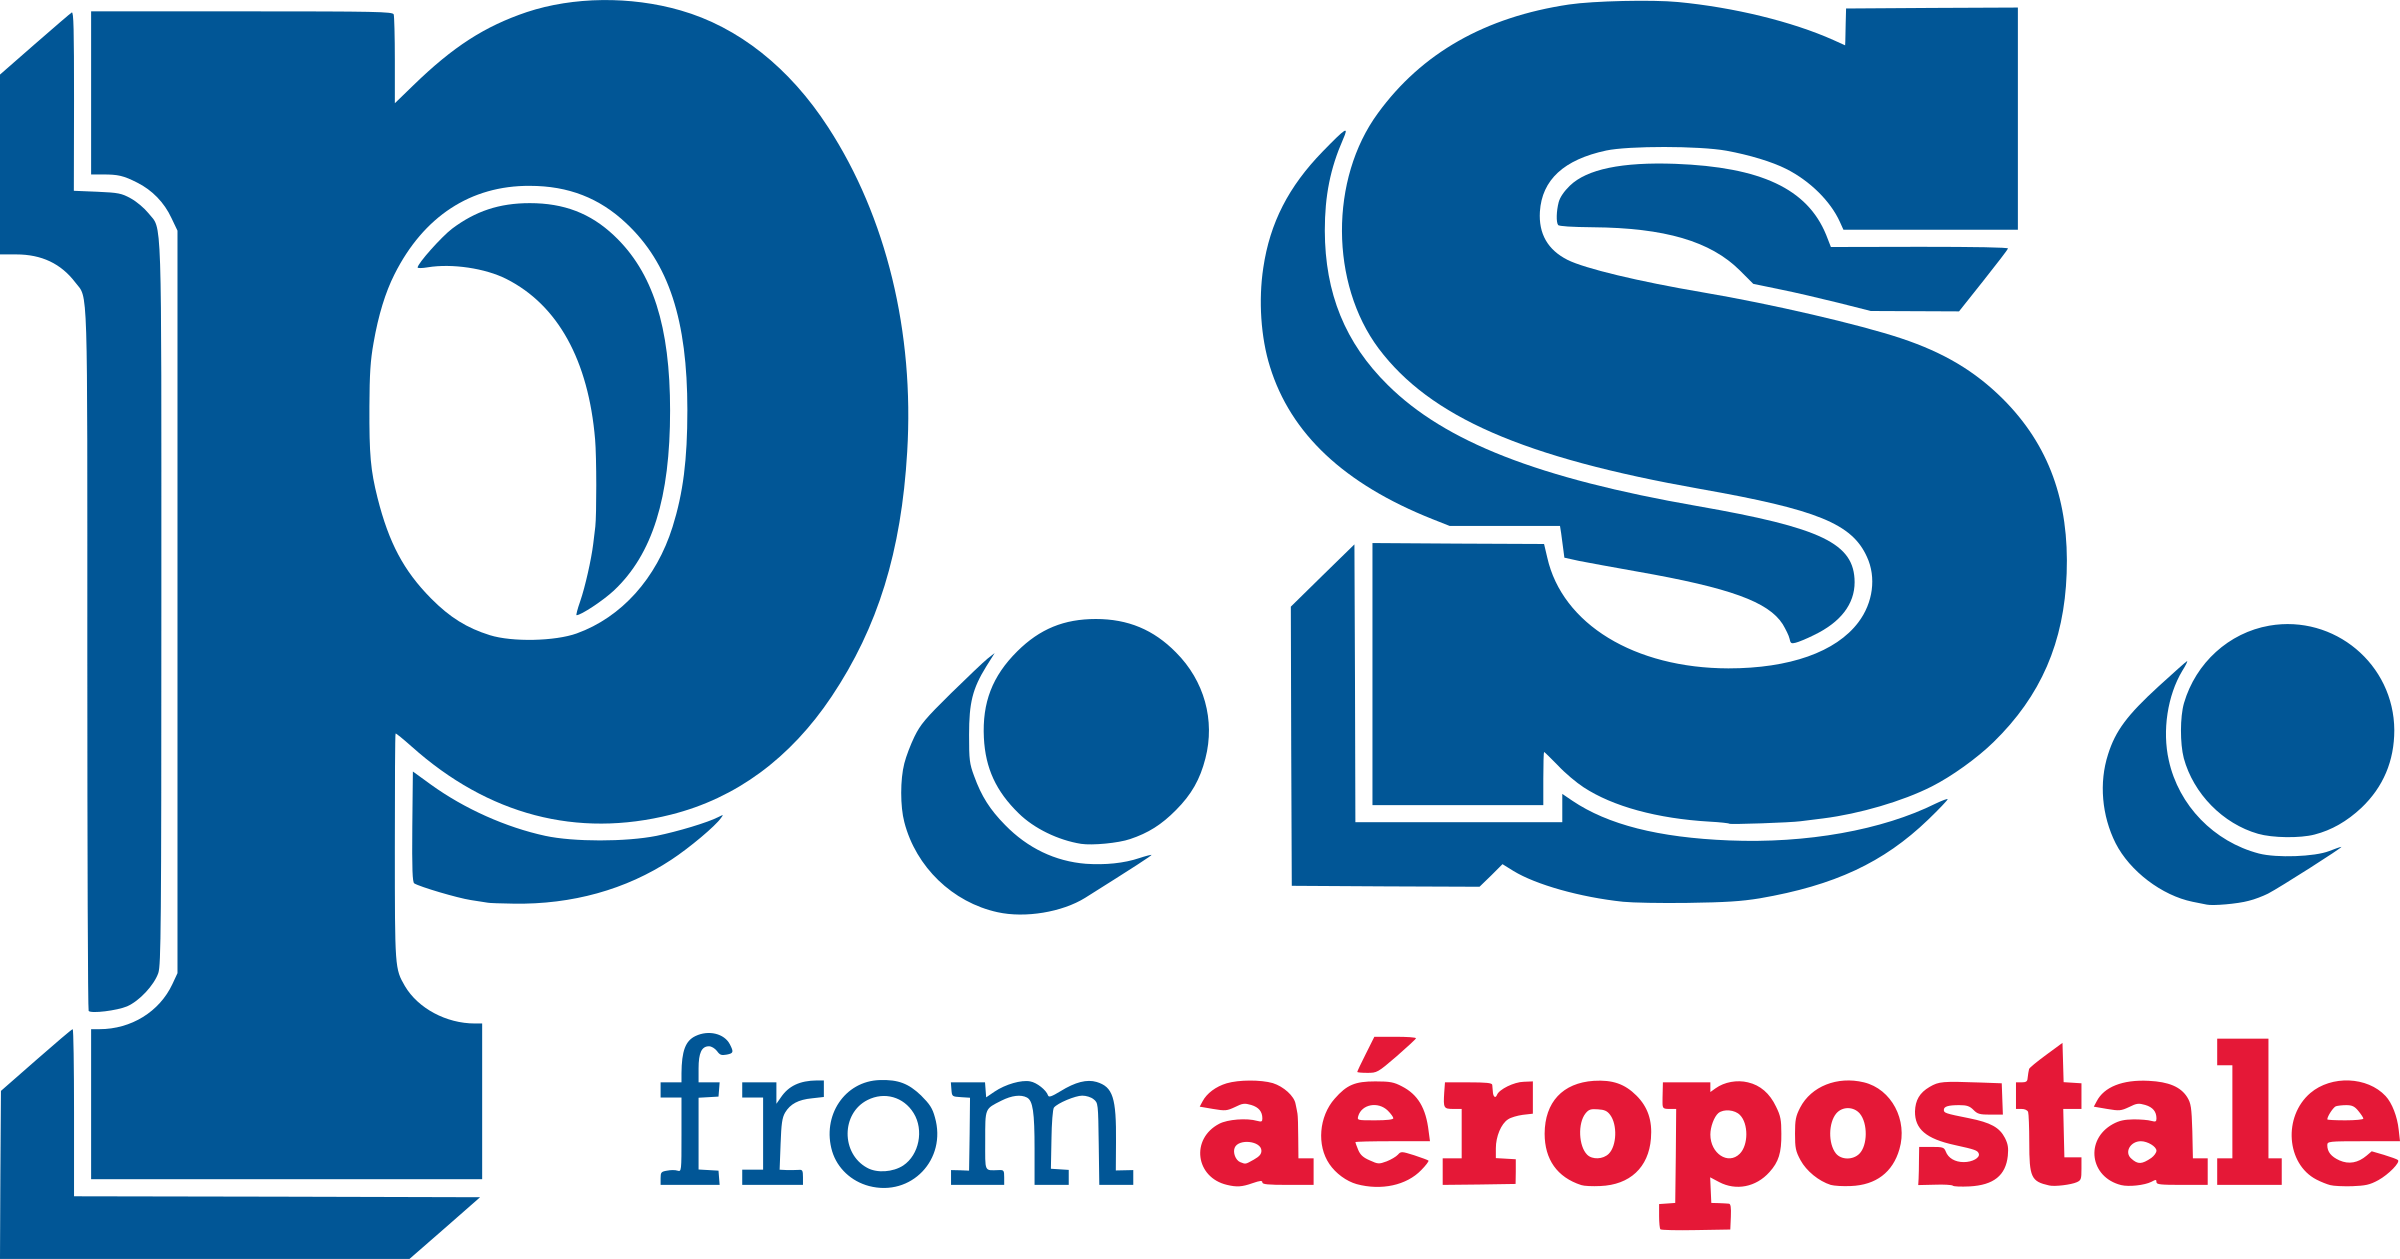 Ps Logo Png Transparent Ps From Aeropostale Logo.